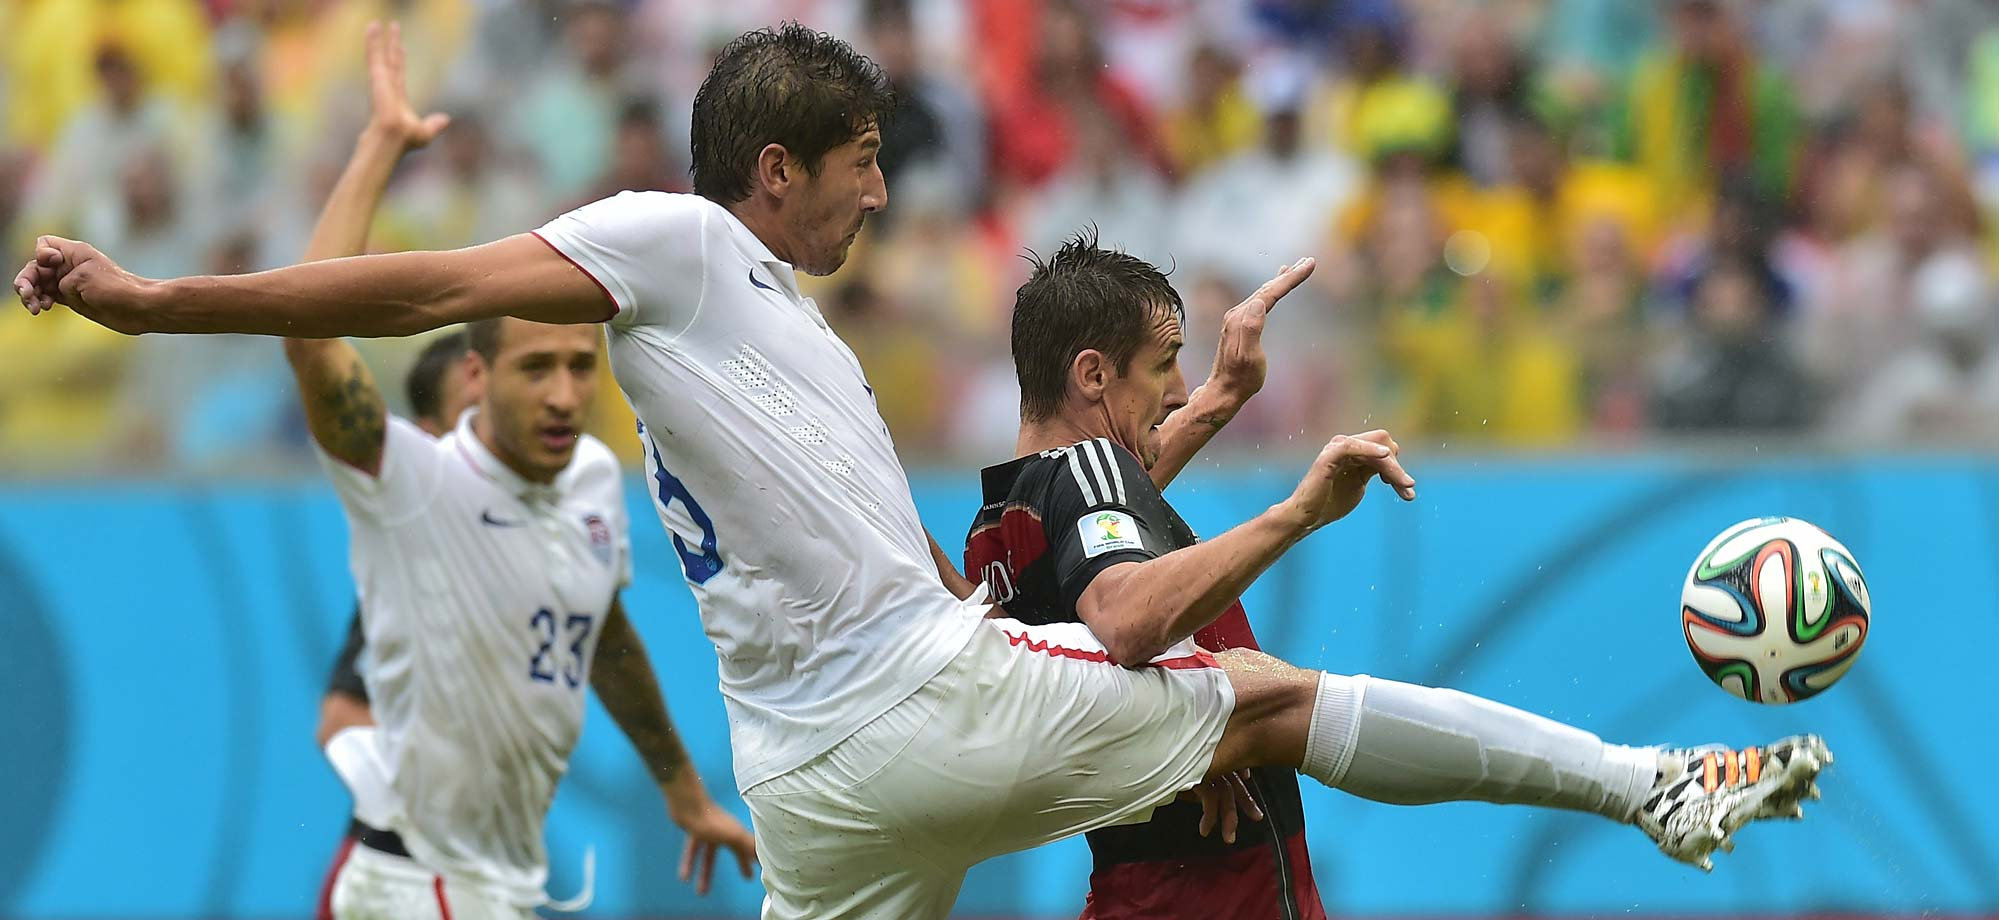 Omar Gonzalez played standout defense for the U.S., including on this play against Miroslav Klose. The Germans, three-time World Cup champions, finished with seven points to win the group, while the U.S. had four and finished second.